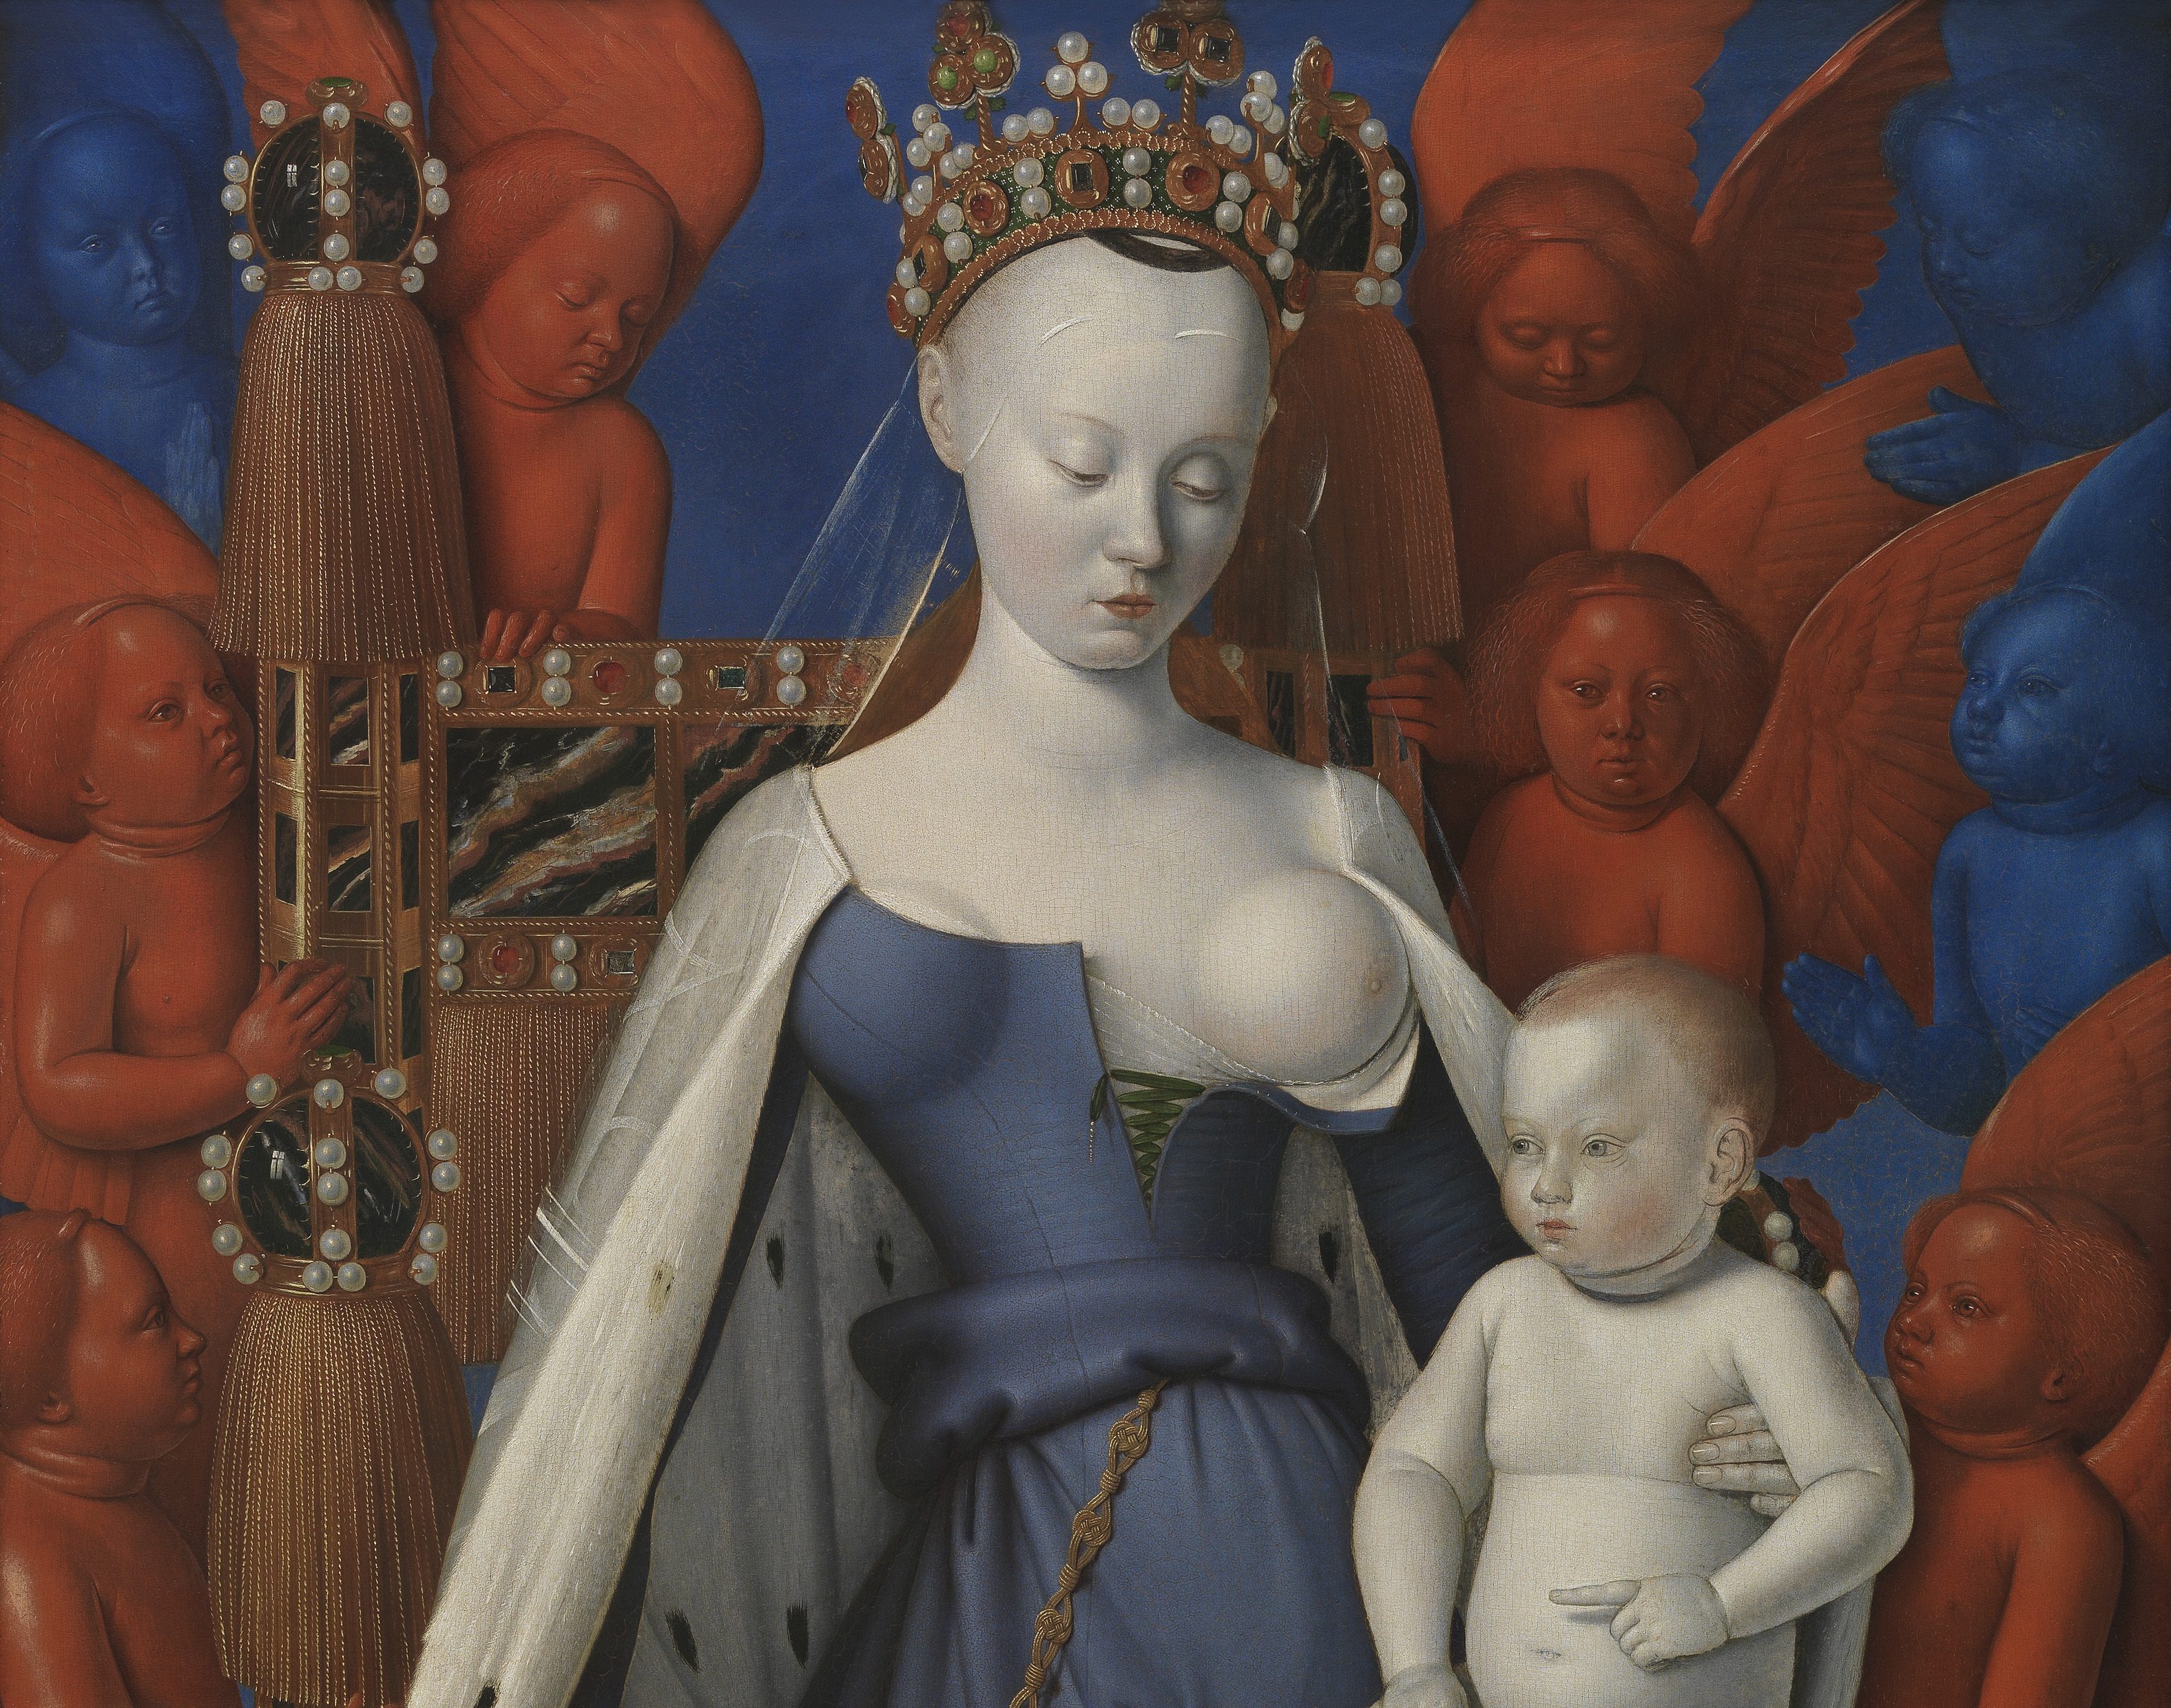 Jean Fouquet (ca. 1415-1480), Virgin and Child Surrounded by Angels, ca. 1455 Royal Museum of Fine Arts, Antwerp